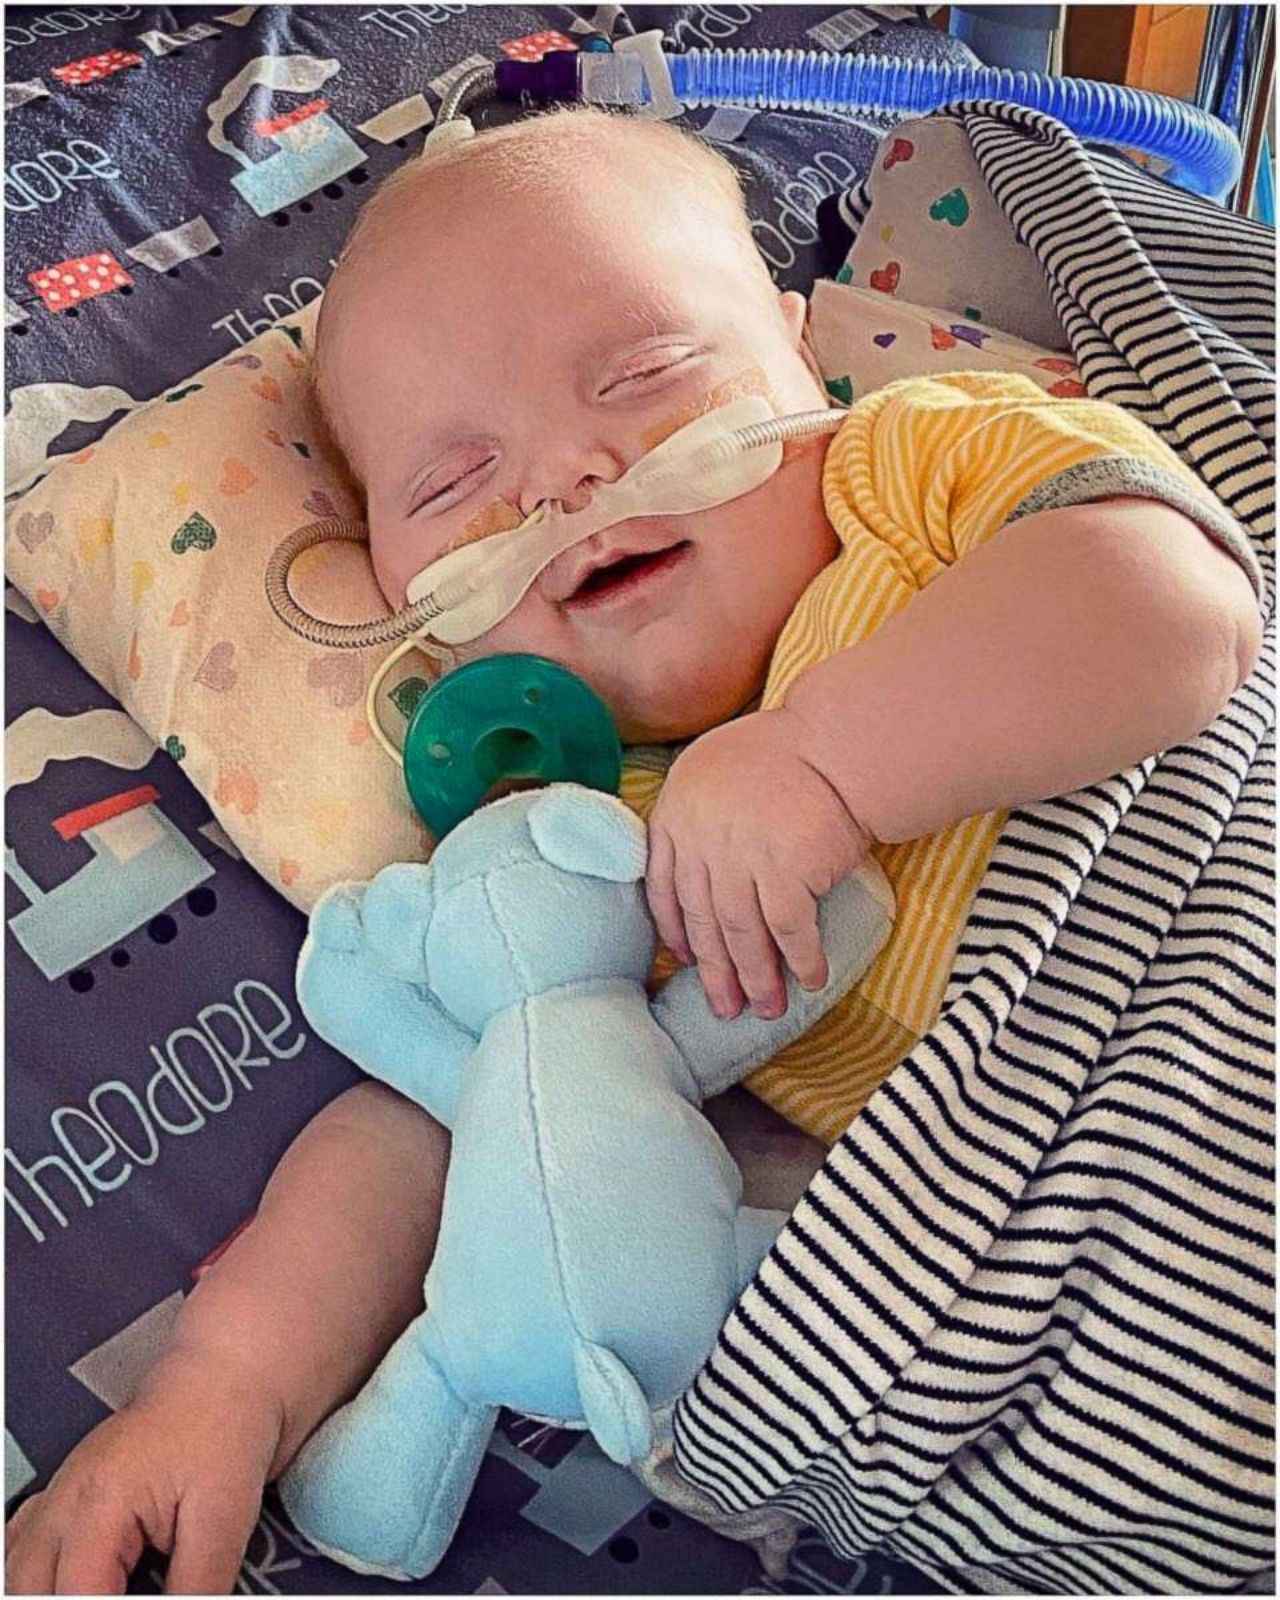 """PHOTO: Theodore """"Teddy"""" Nelson has spent 185 days in the hospital. On Nov. 13, the 6-month-old had his second open heart surgery and on Feb. 6, Teddy finally smirked for his mom and dad."""